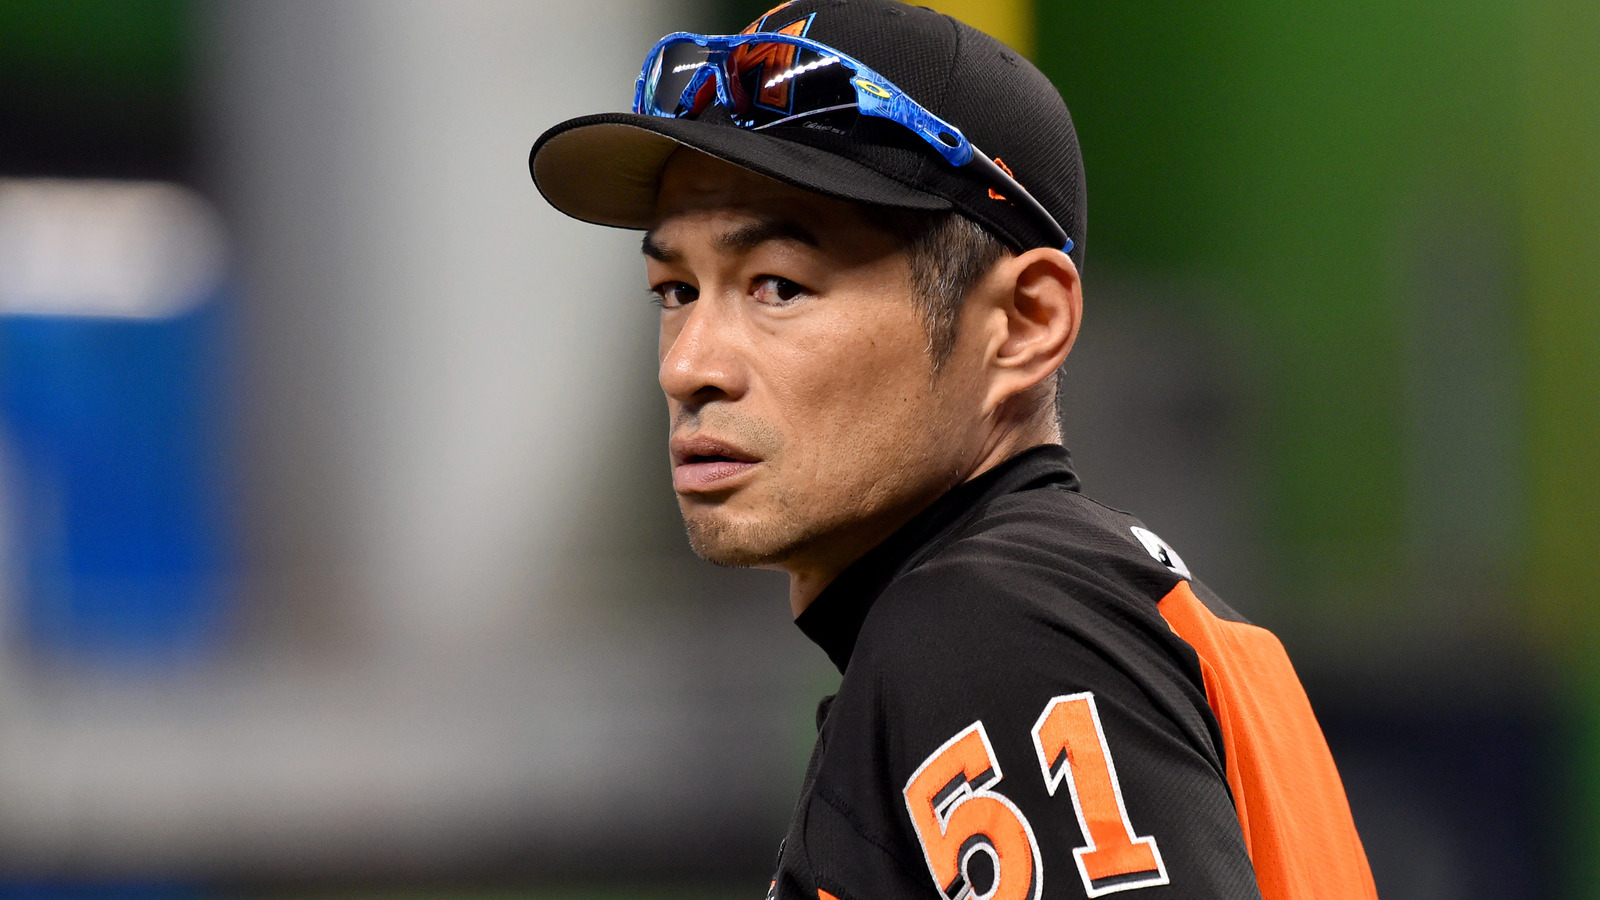 Ichiro Suzuki finalizing one-year deal to return to Seattle